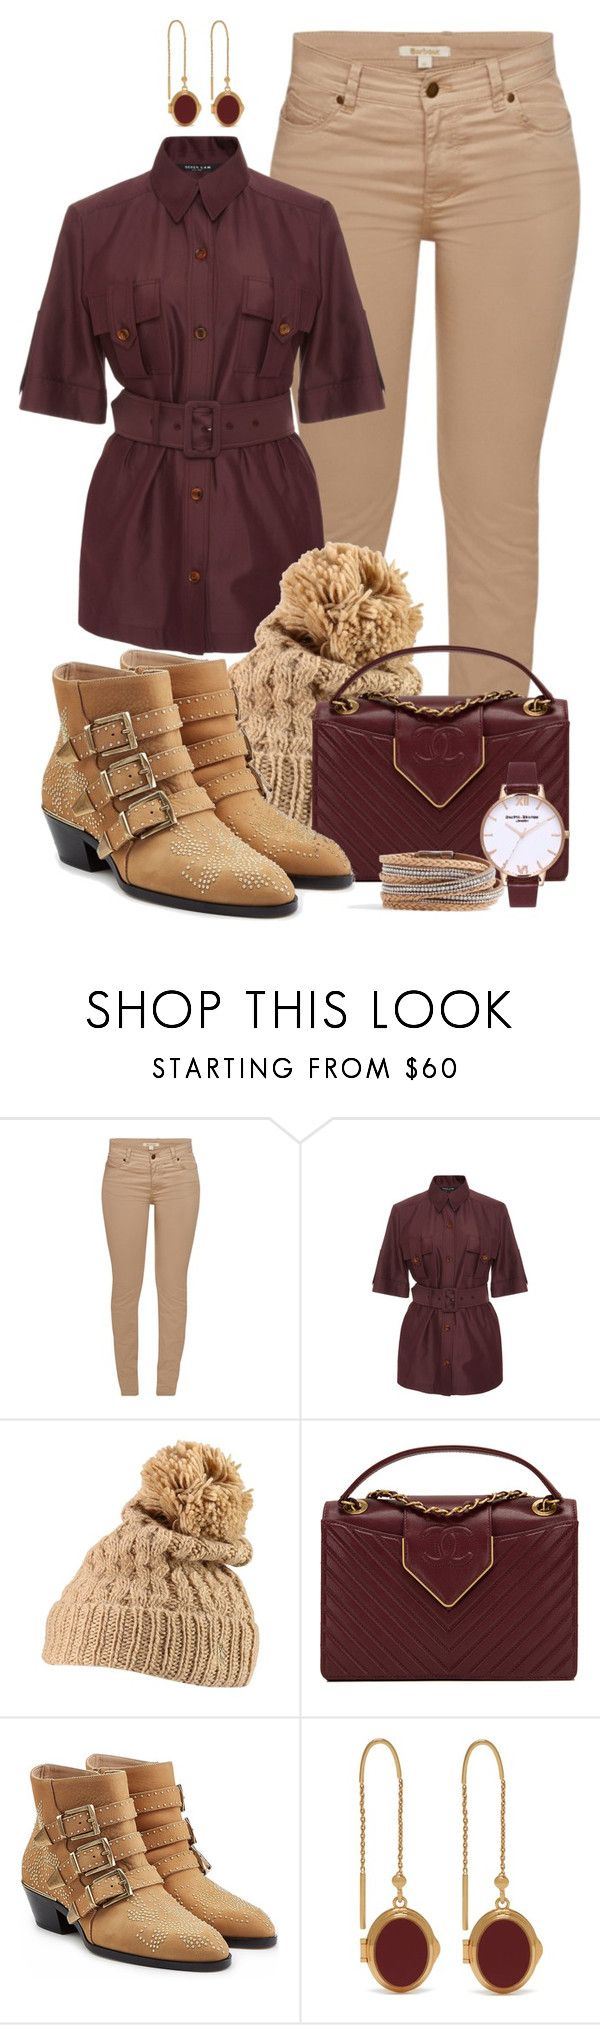 """""""Matching Hat and Ankle Boots"""" by tlb0318 ❤ liked on Polyvore featuring Barbour, Derek Lam, Polo Ralph Lauren, Chanel, Chloé, Mulberry and Olivia Burton"""